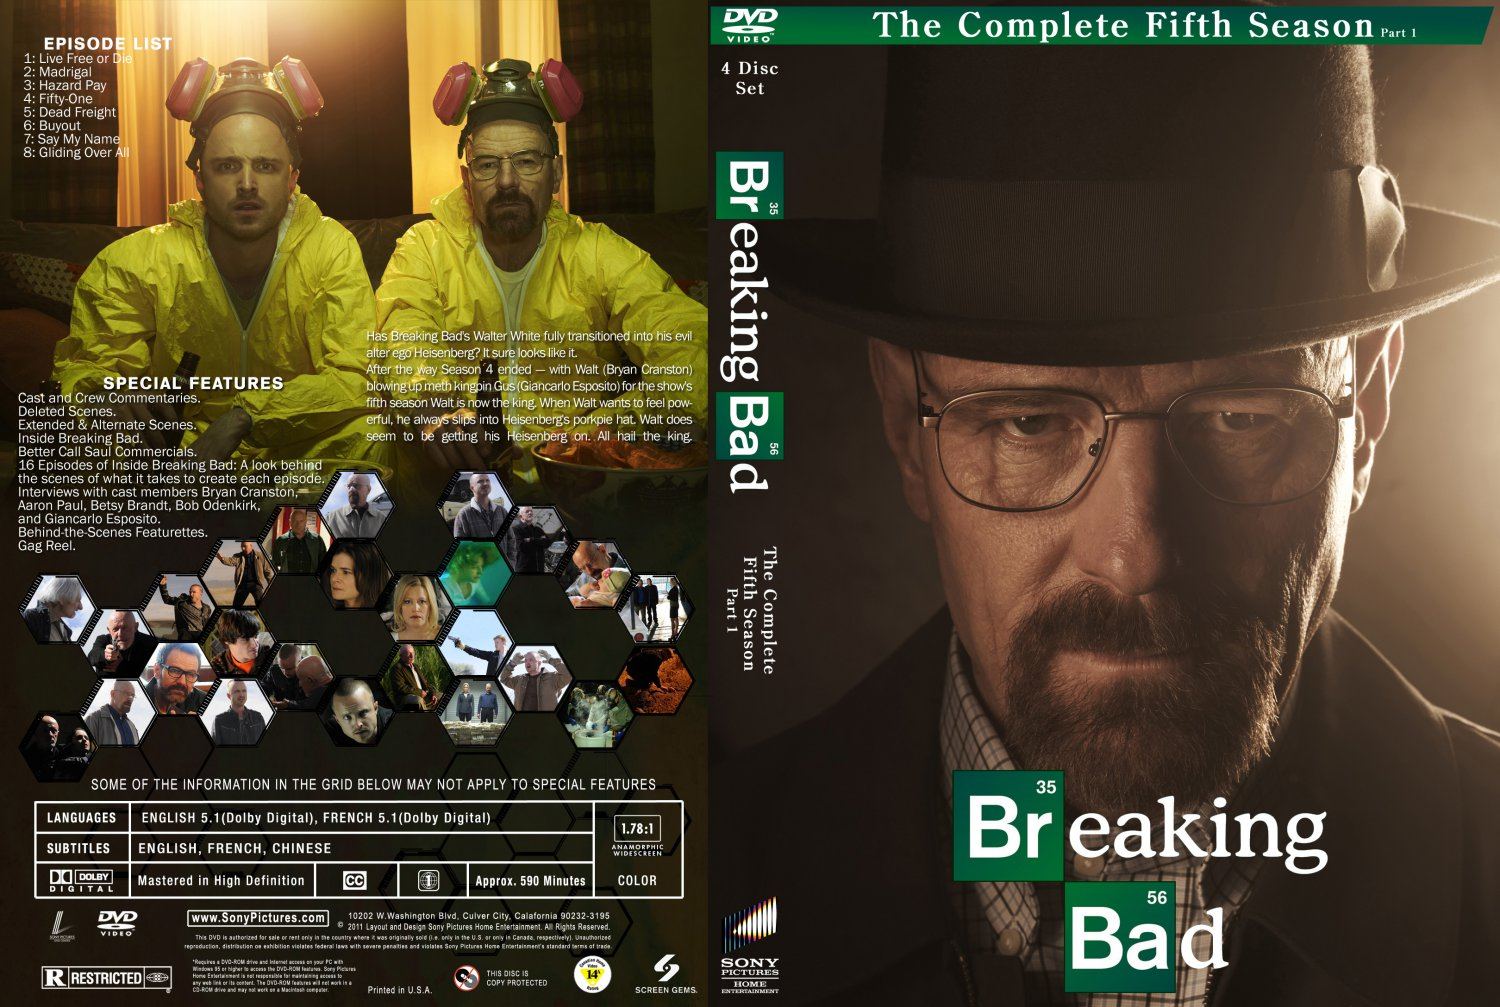 breaking bad season 5 breaking bad season 5 _custom date 03 18 2013